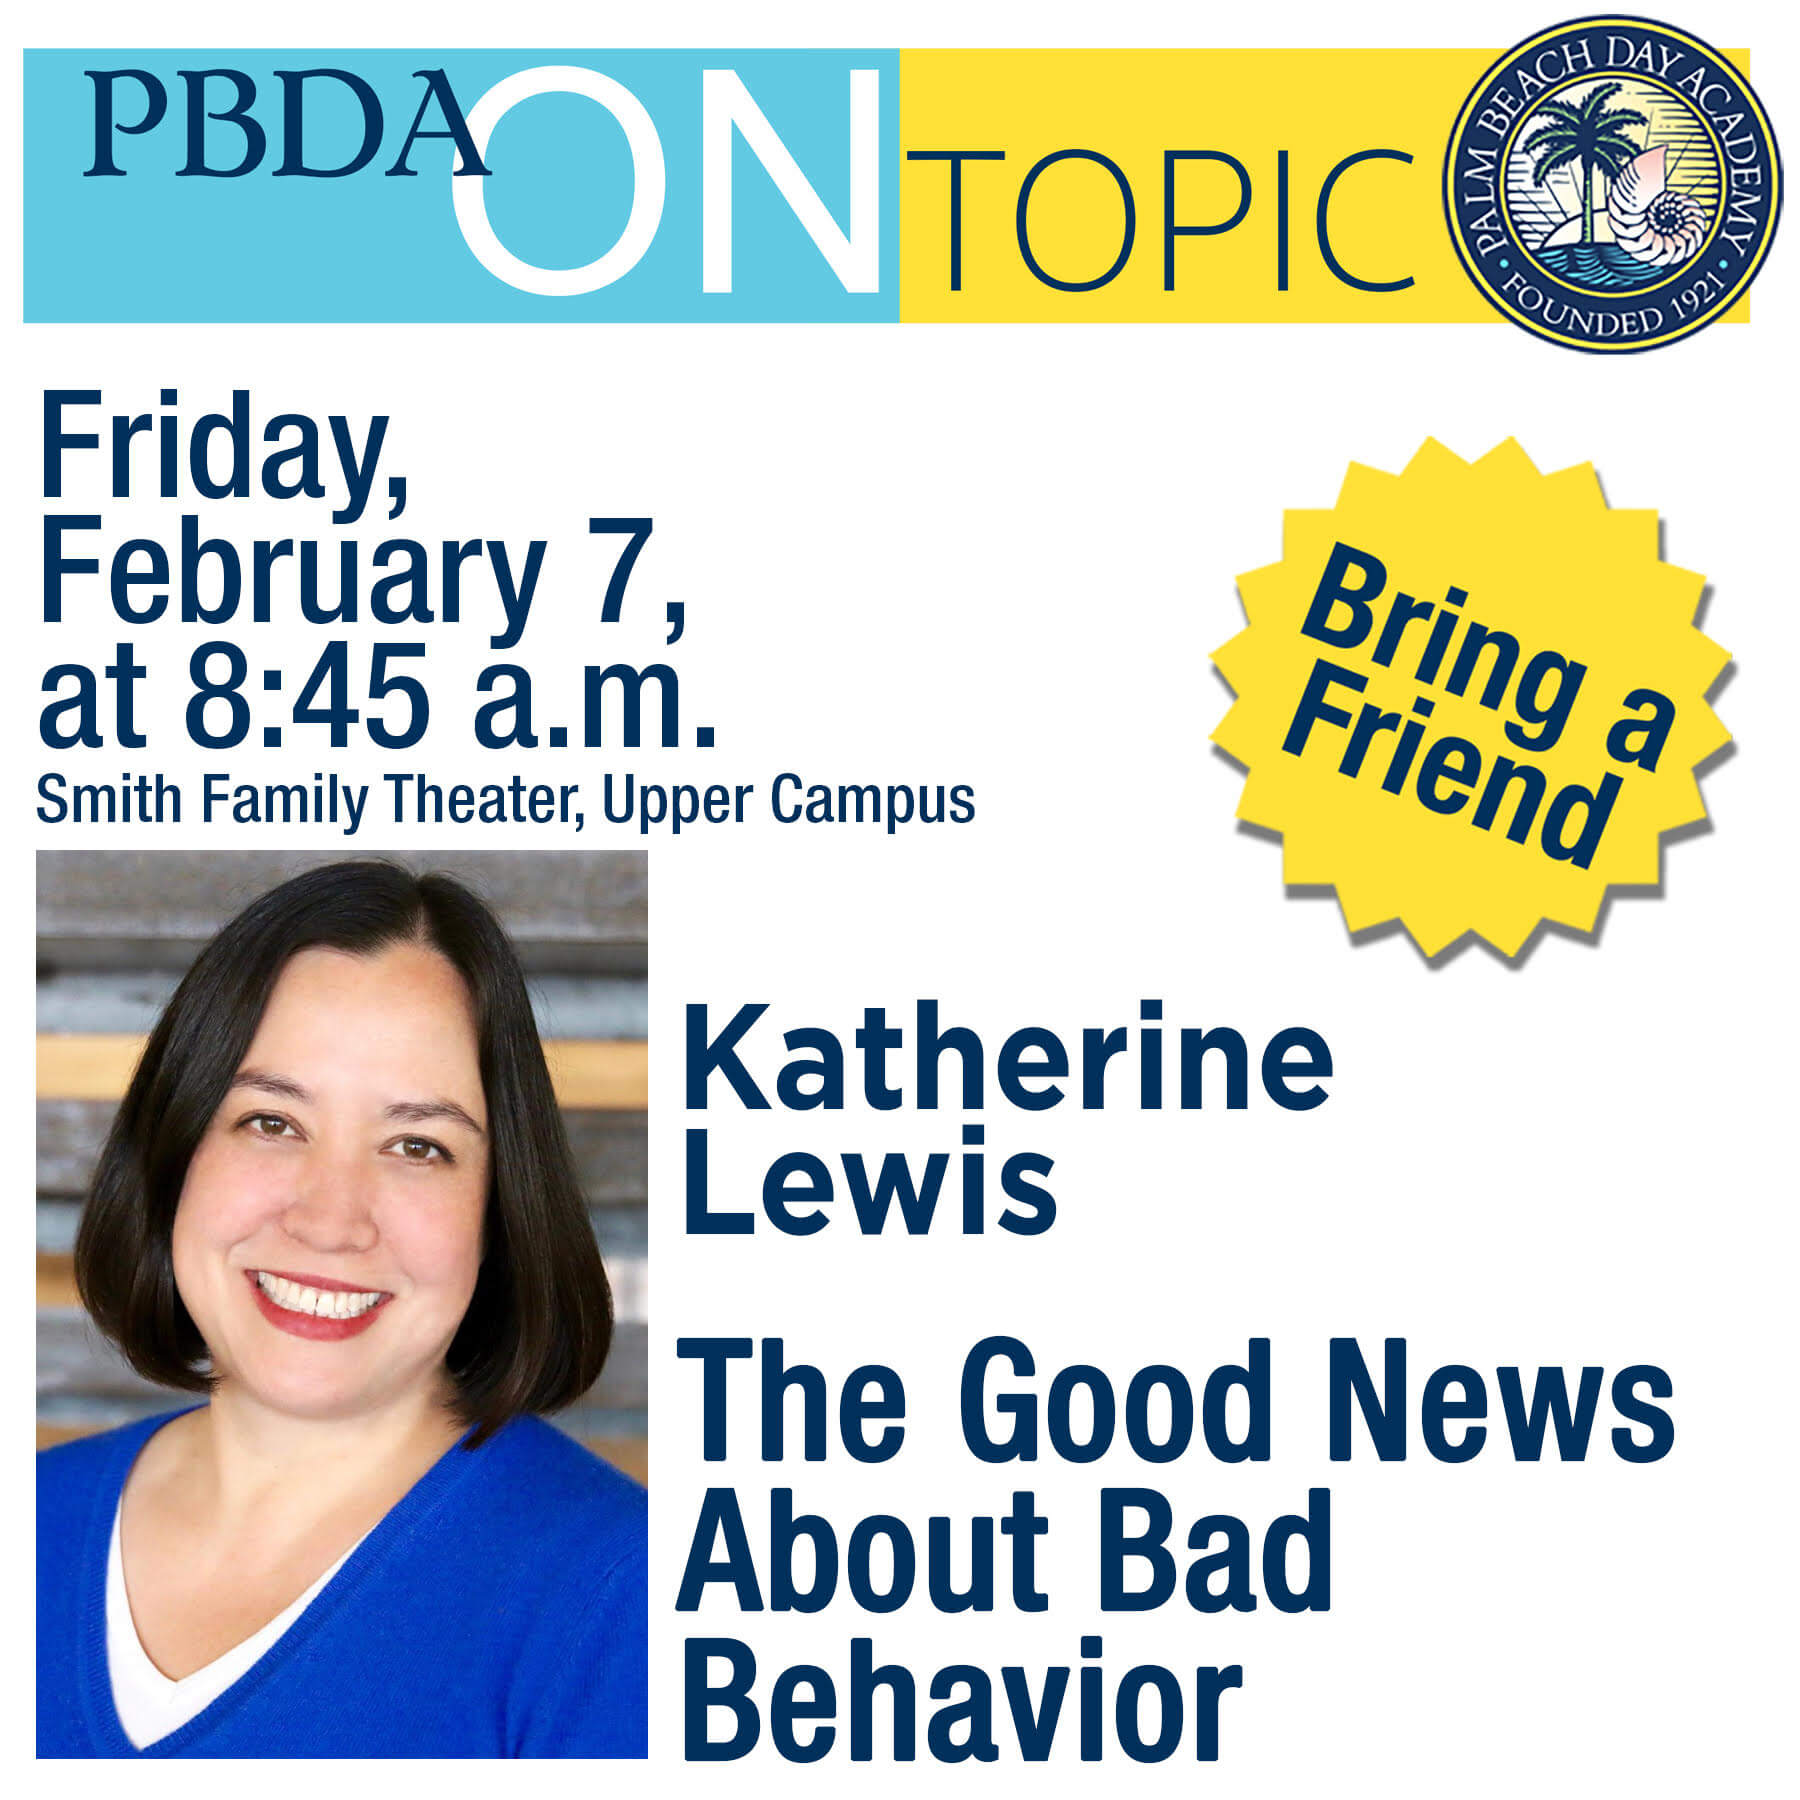 PBDA On Topic Katherine Lewis